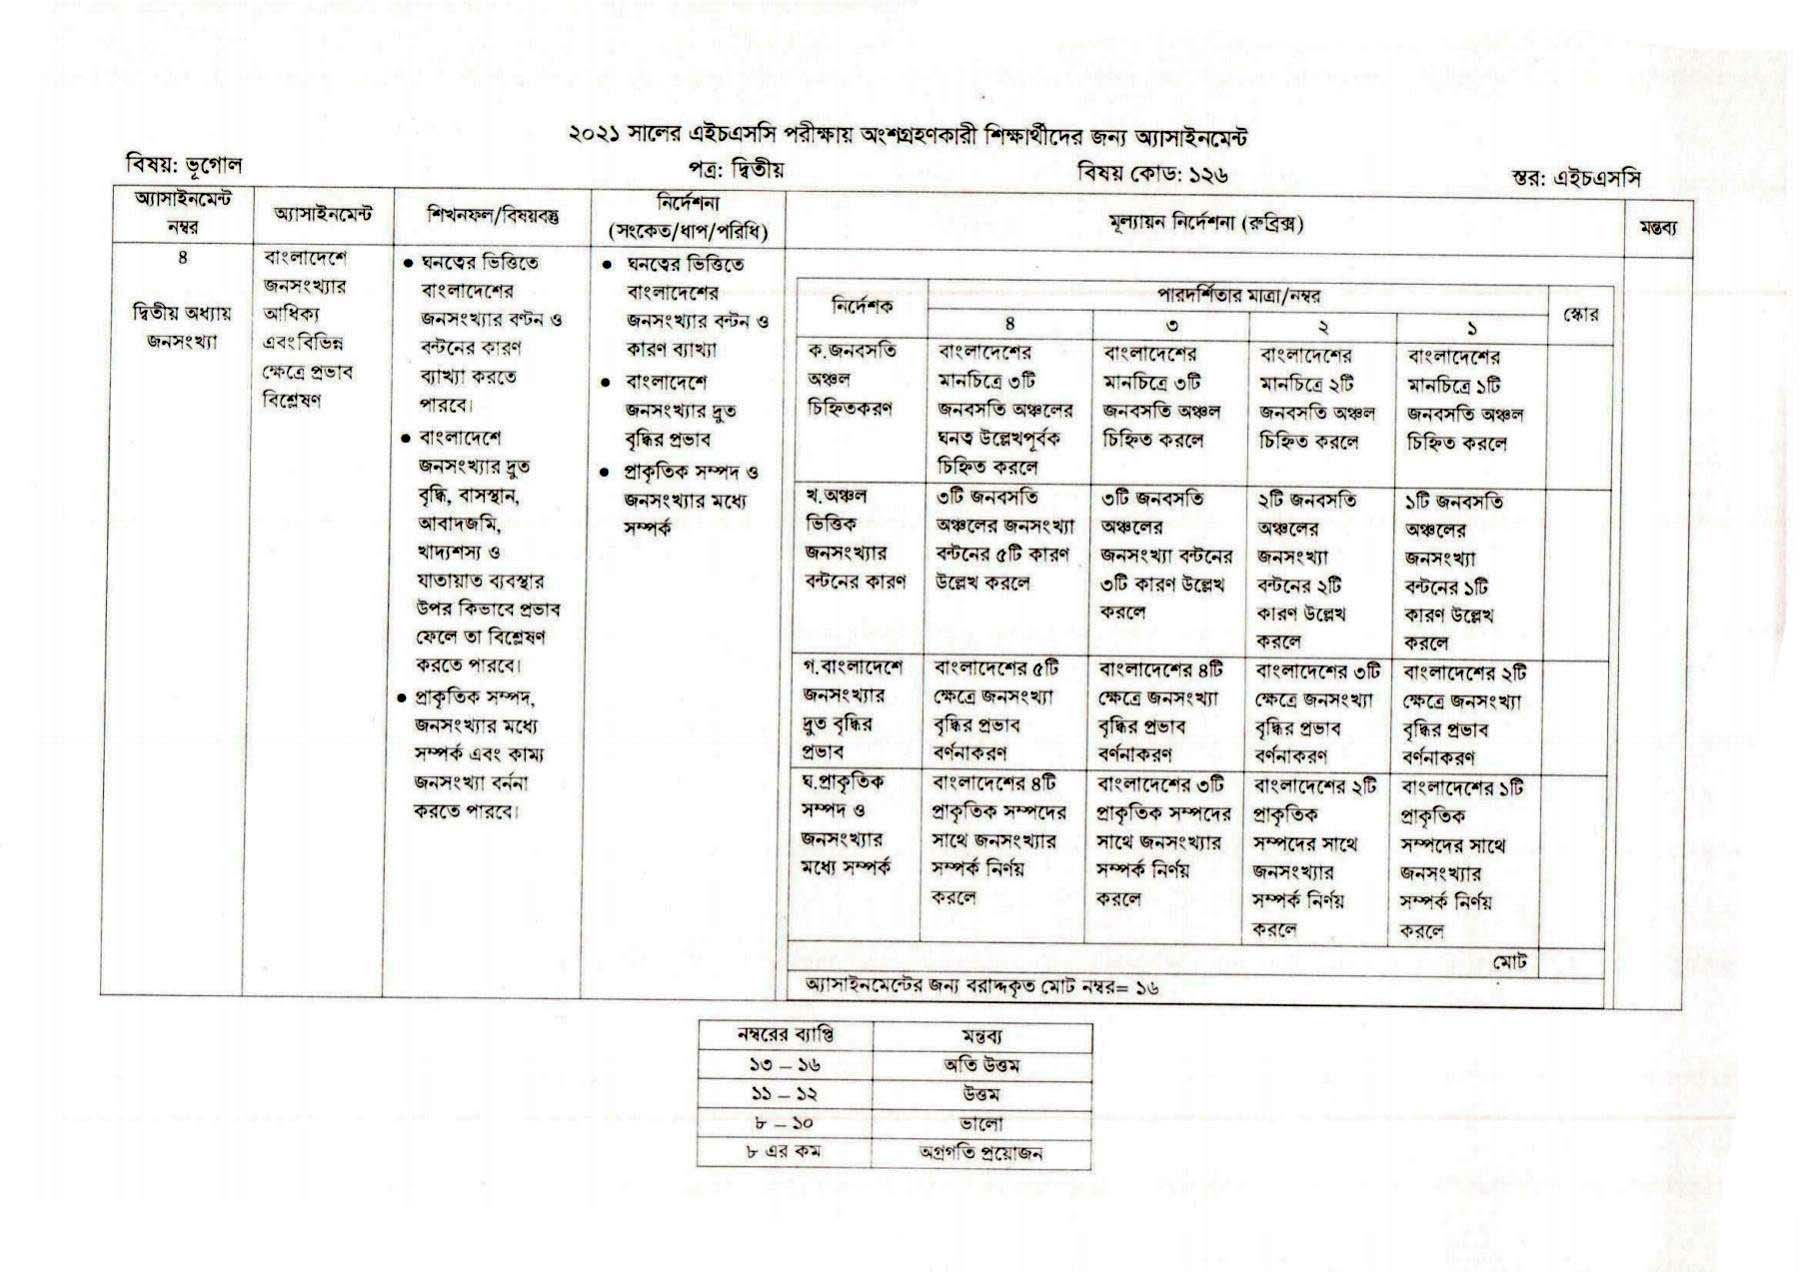 HSC 2021 Geography 3rd week assignment solution published today. 1